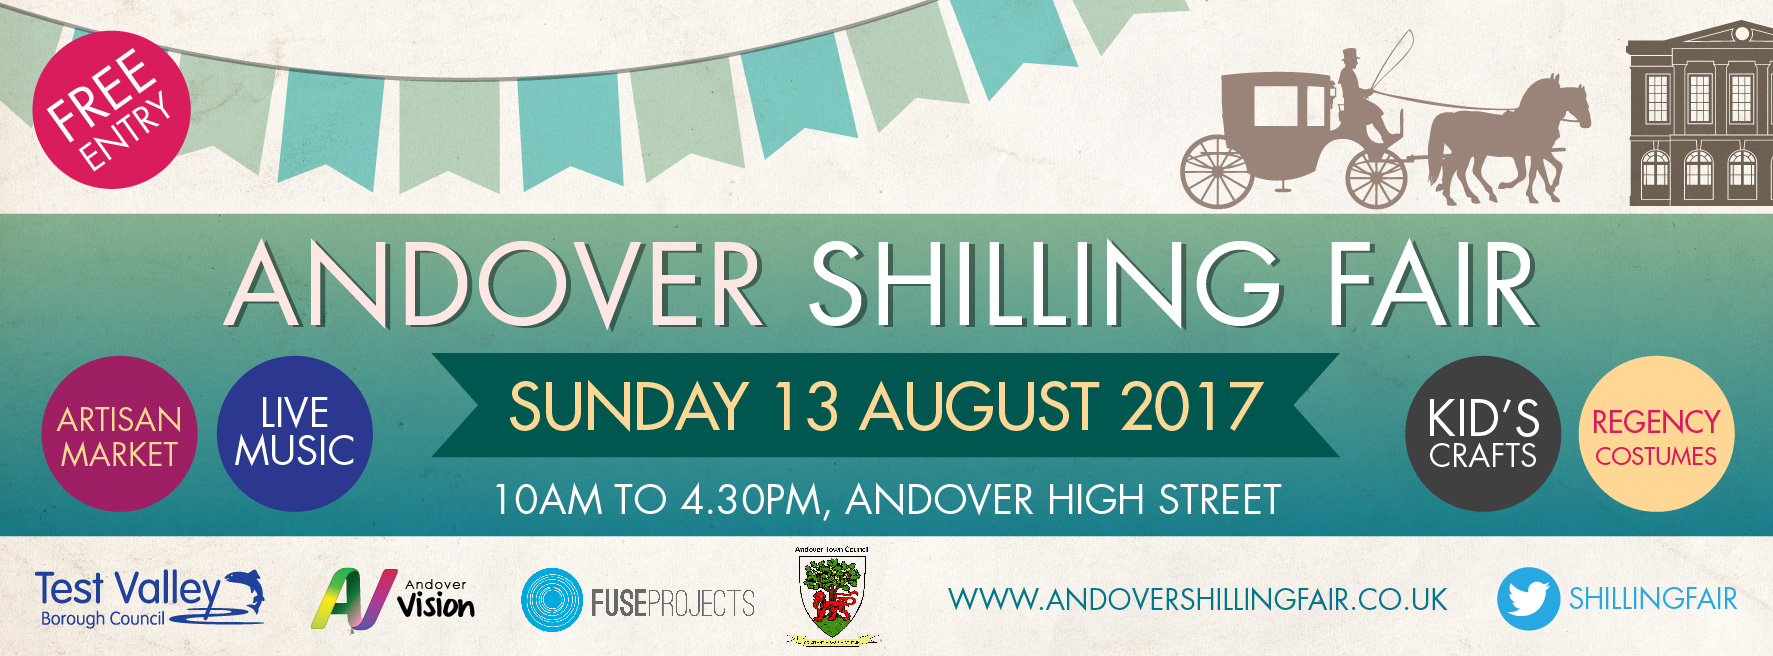 Shilling Fair Facebook banner-01